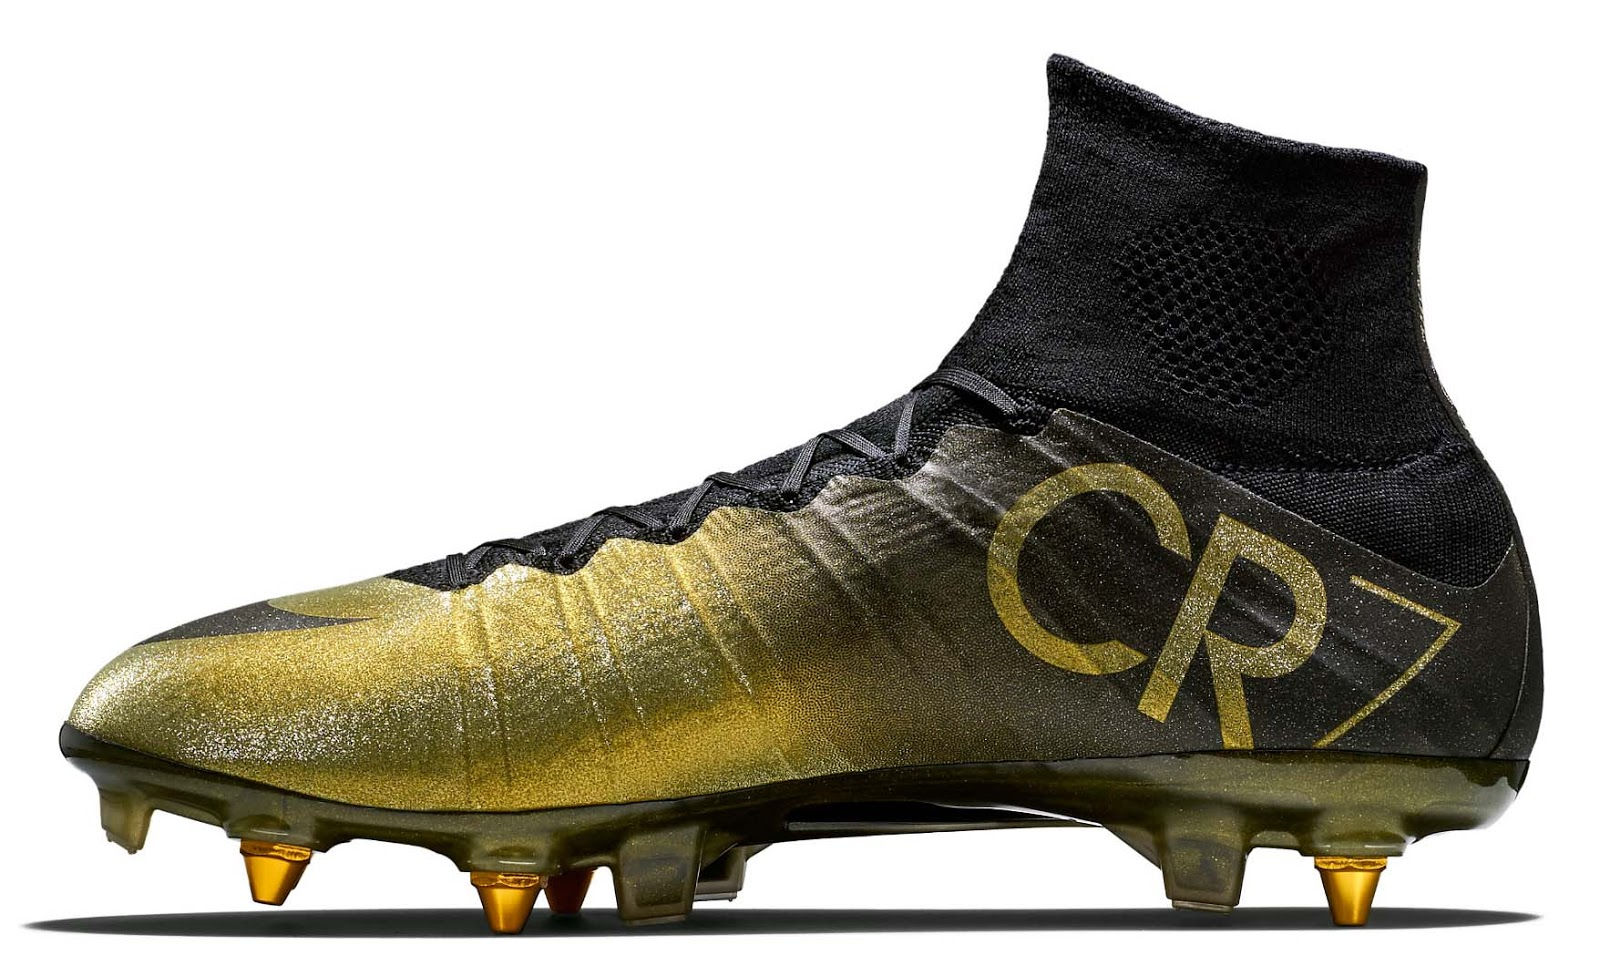 nike mercurial superfly cr7 rare gold boots sold out